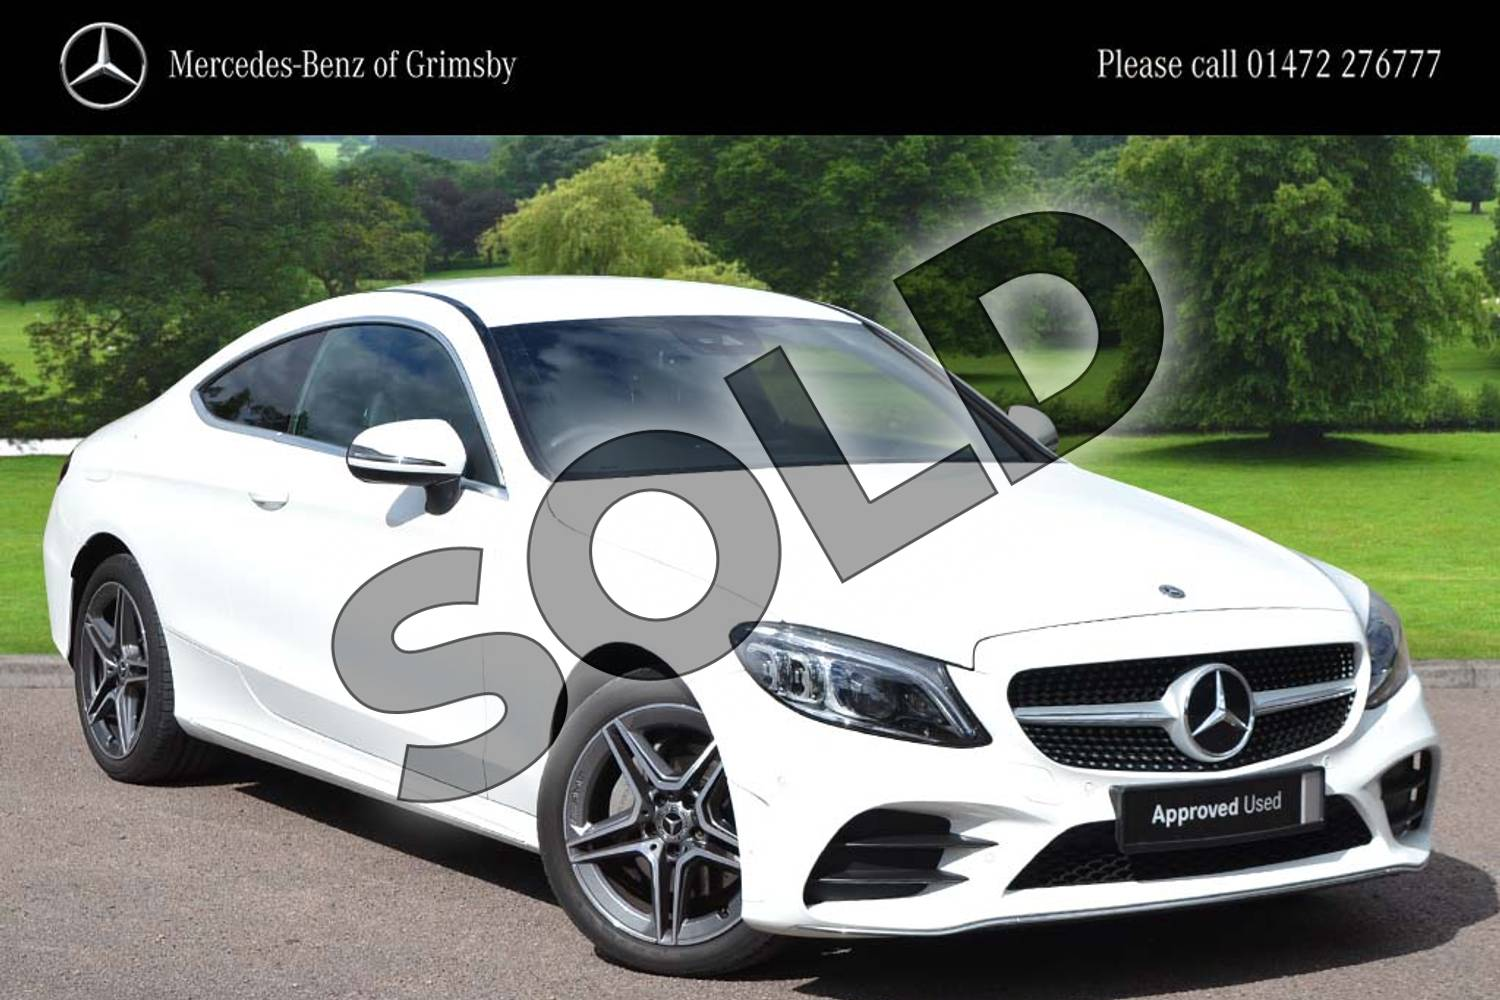 Mercedes-Benz C Class C180 AMG Line Premium 2dr 9G-Tronic for sale at Mercedes-Benz of Grimsby ...